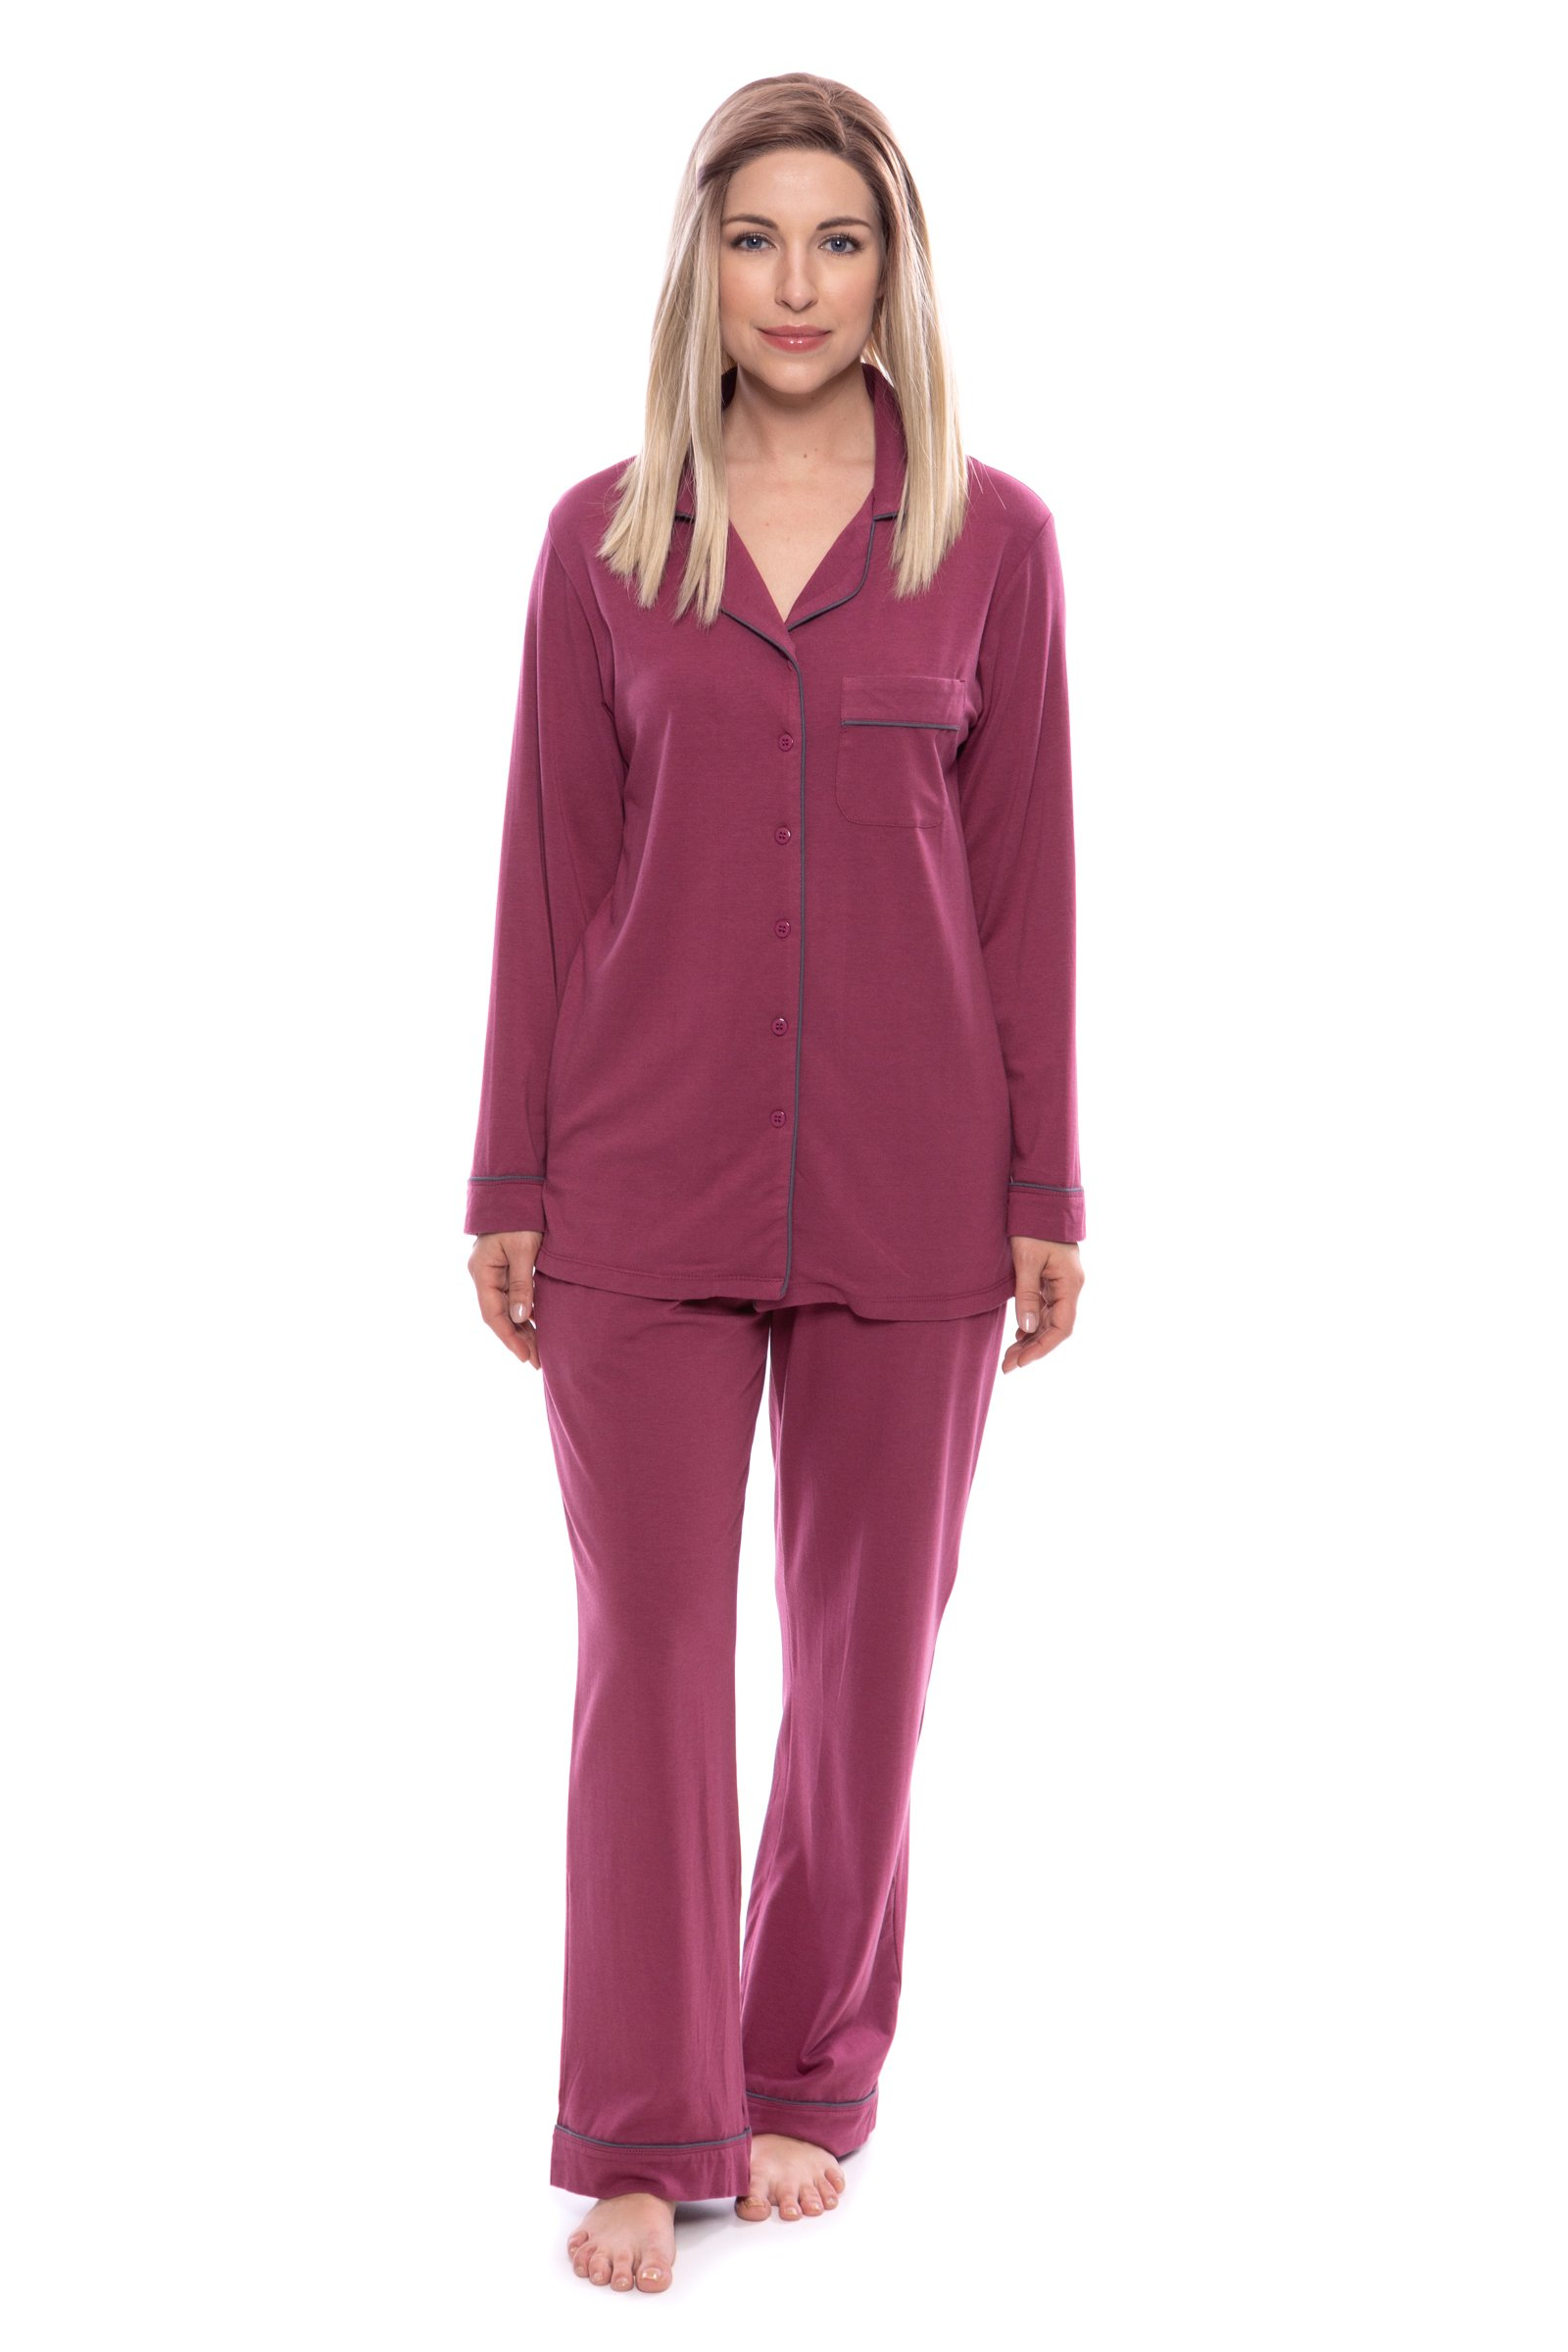 Women's Button-Up Long Sleeve Pajamas - Sleepwear set by Texere (Classicomfort, Garnet, Medium/Petite) Romantic Gifts for Her WB0004-GNT-MP